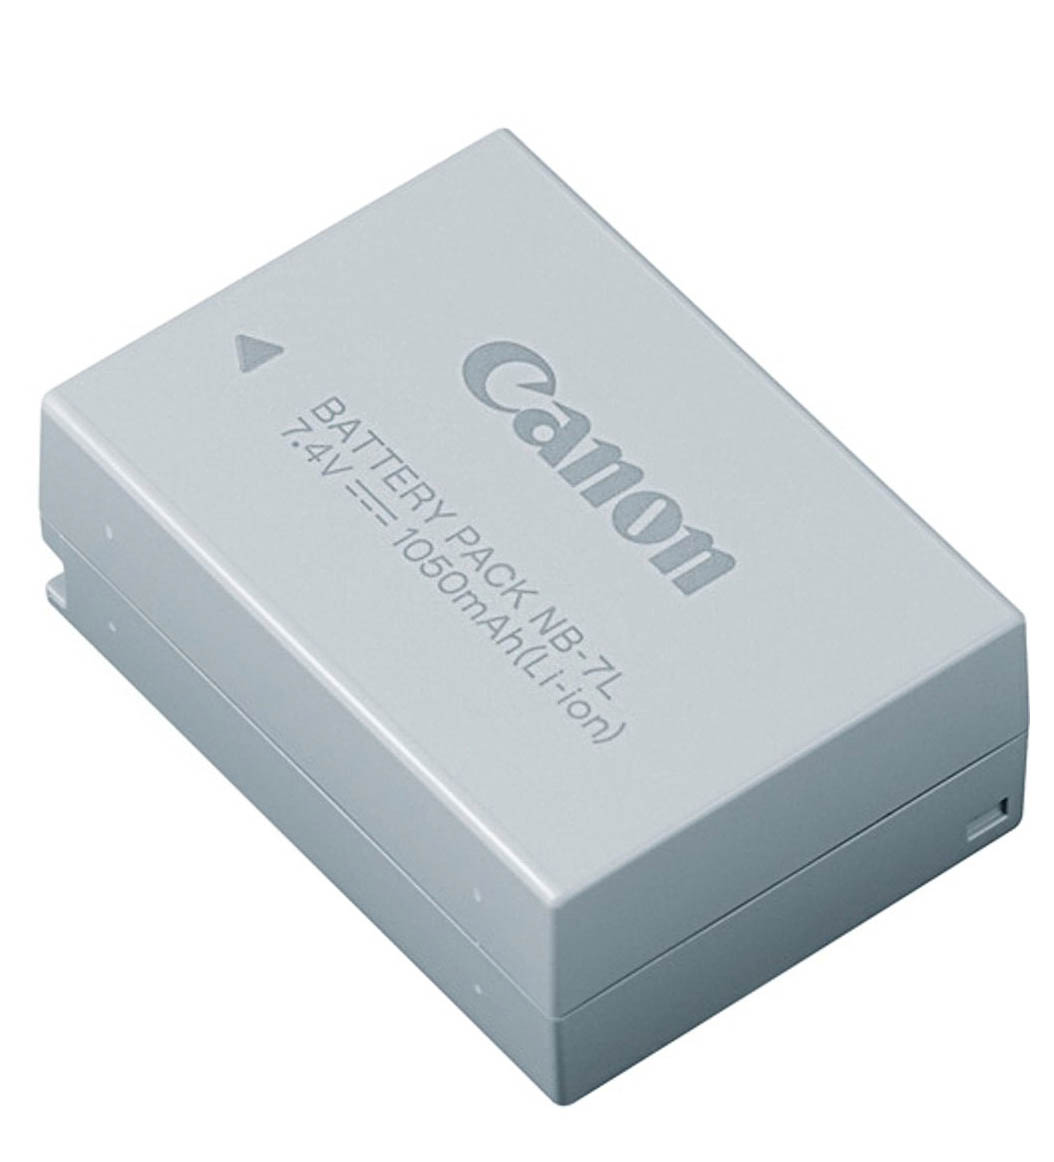 Canon NB-7L battery for Canon G10, G11, and G12 Cameras